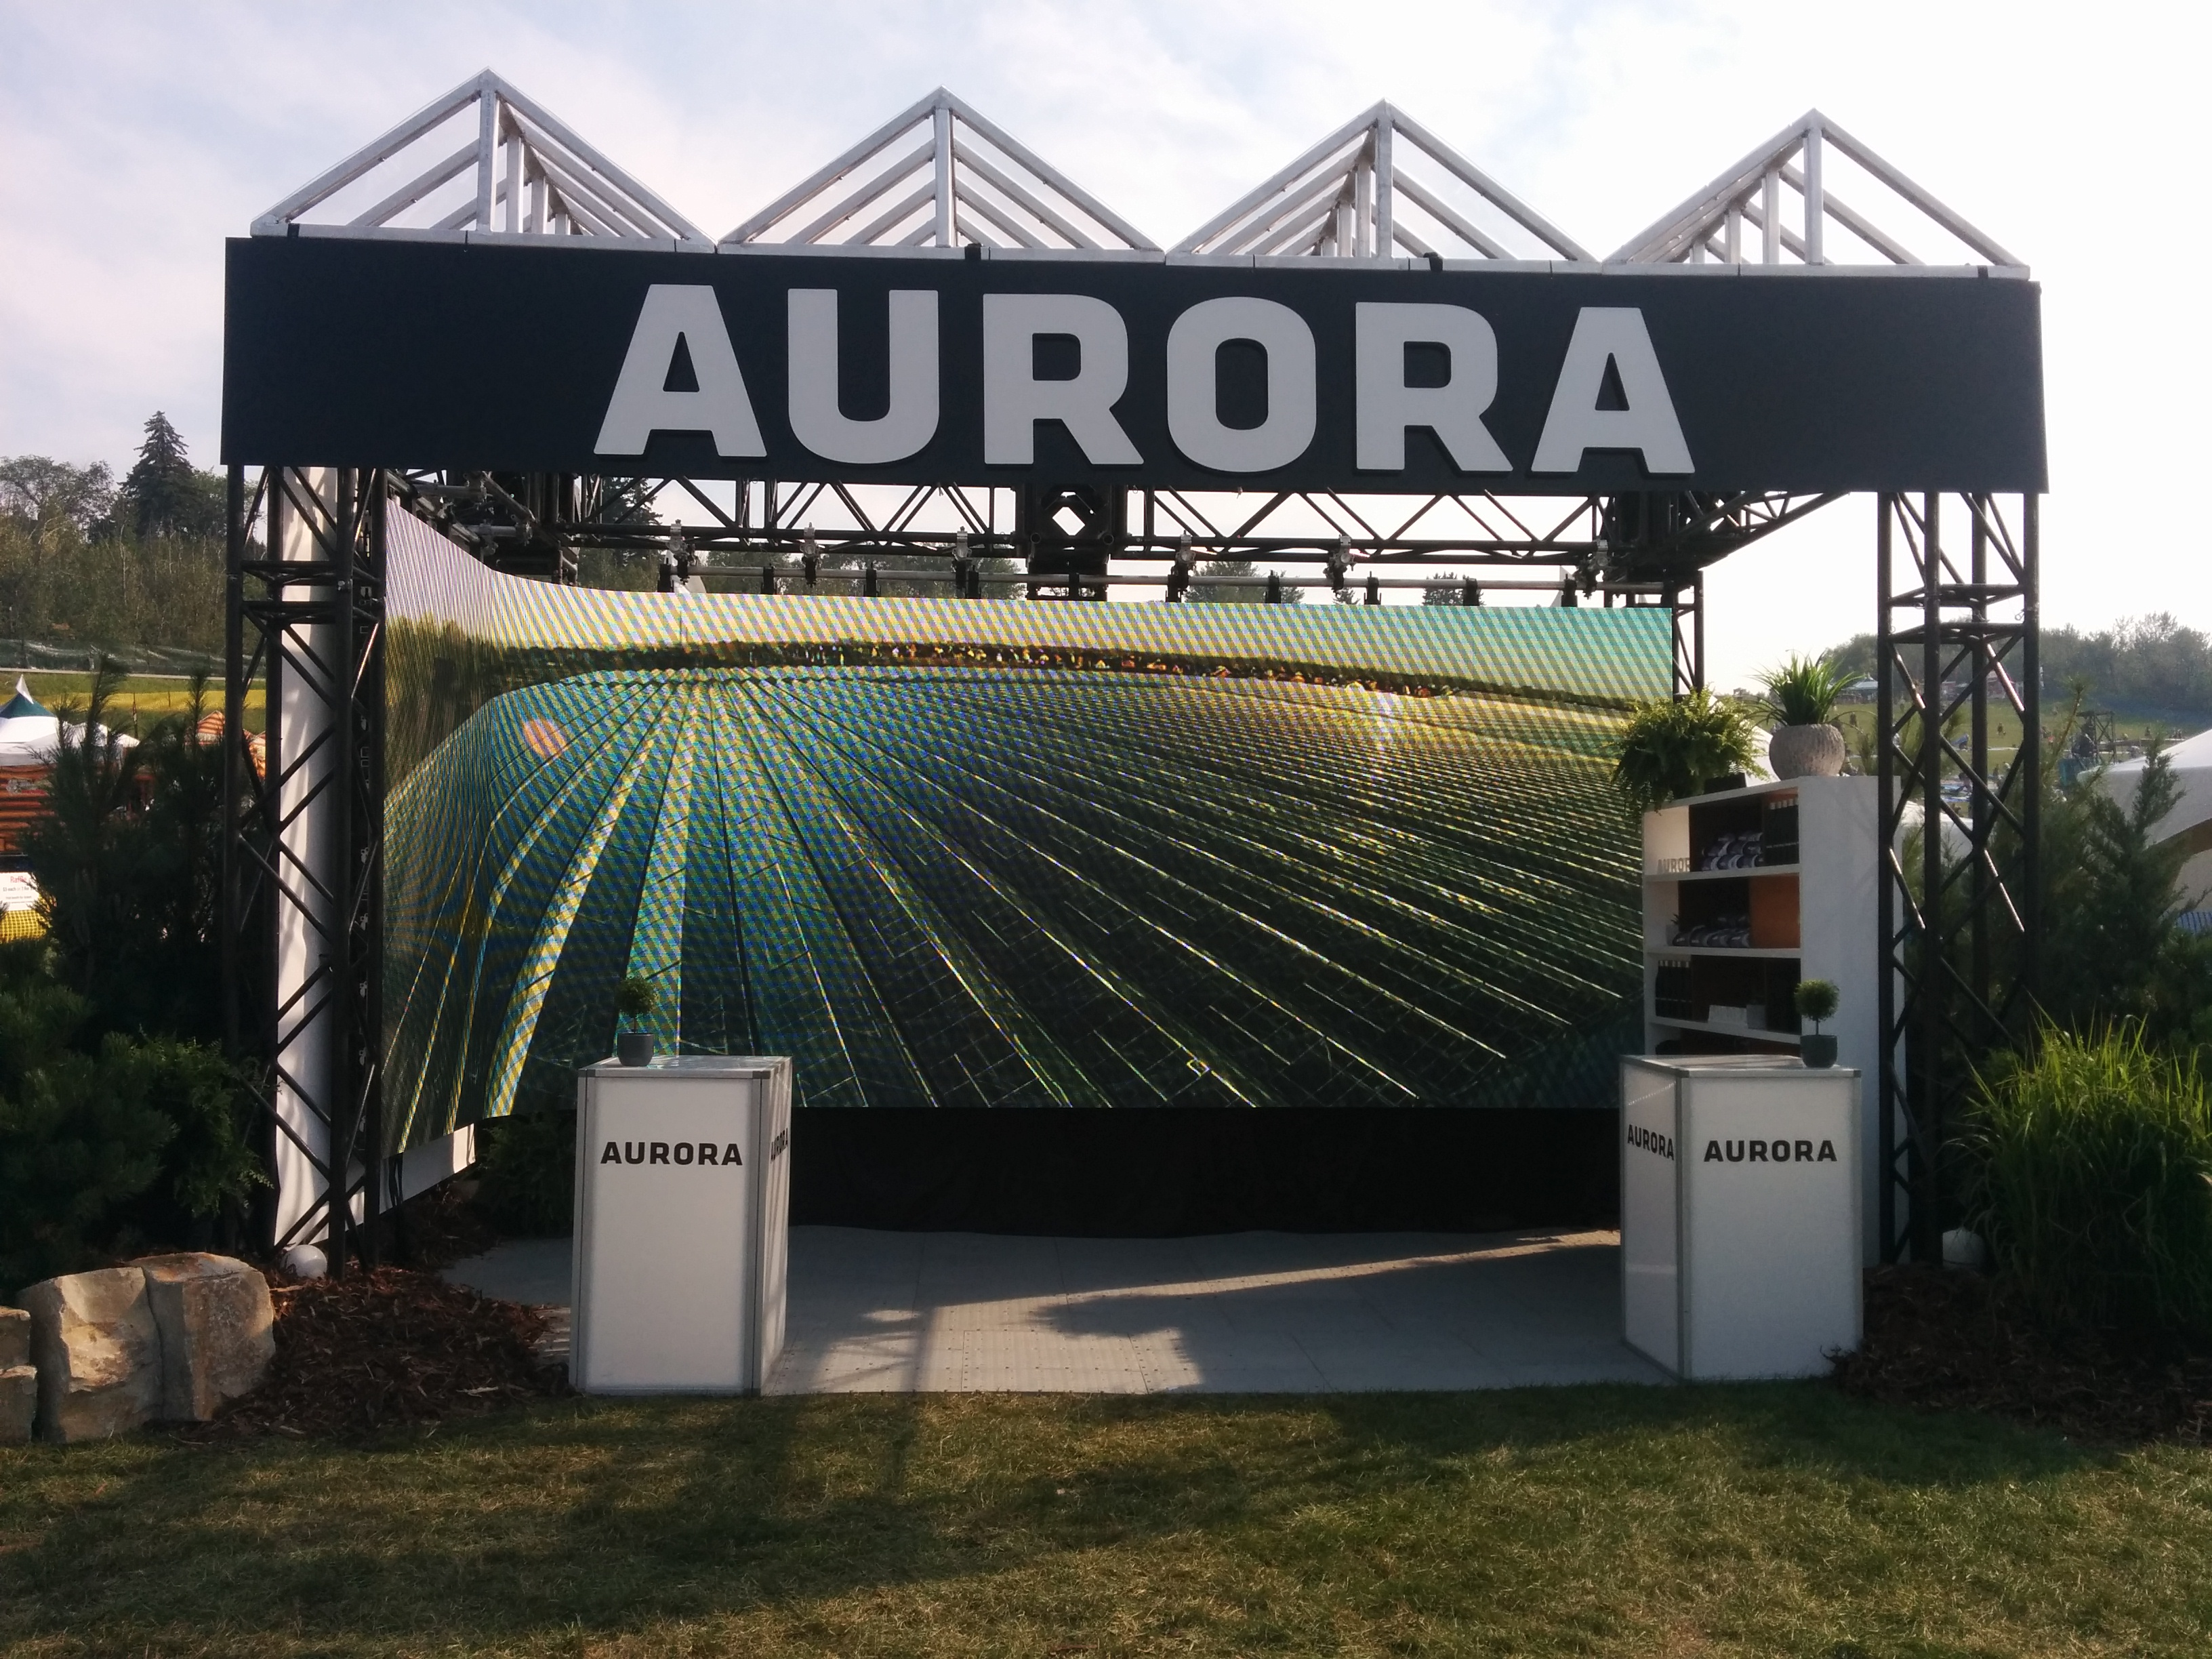 Aurora booth with LED backdrop